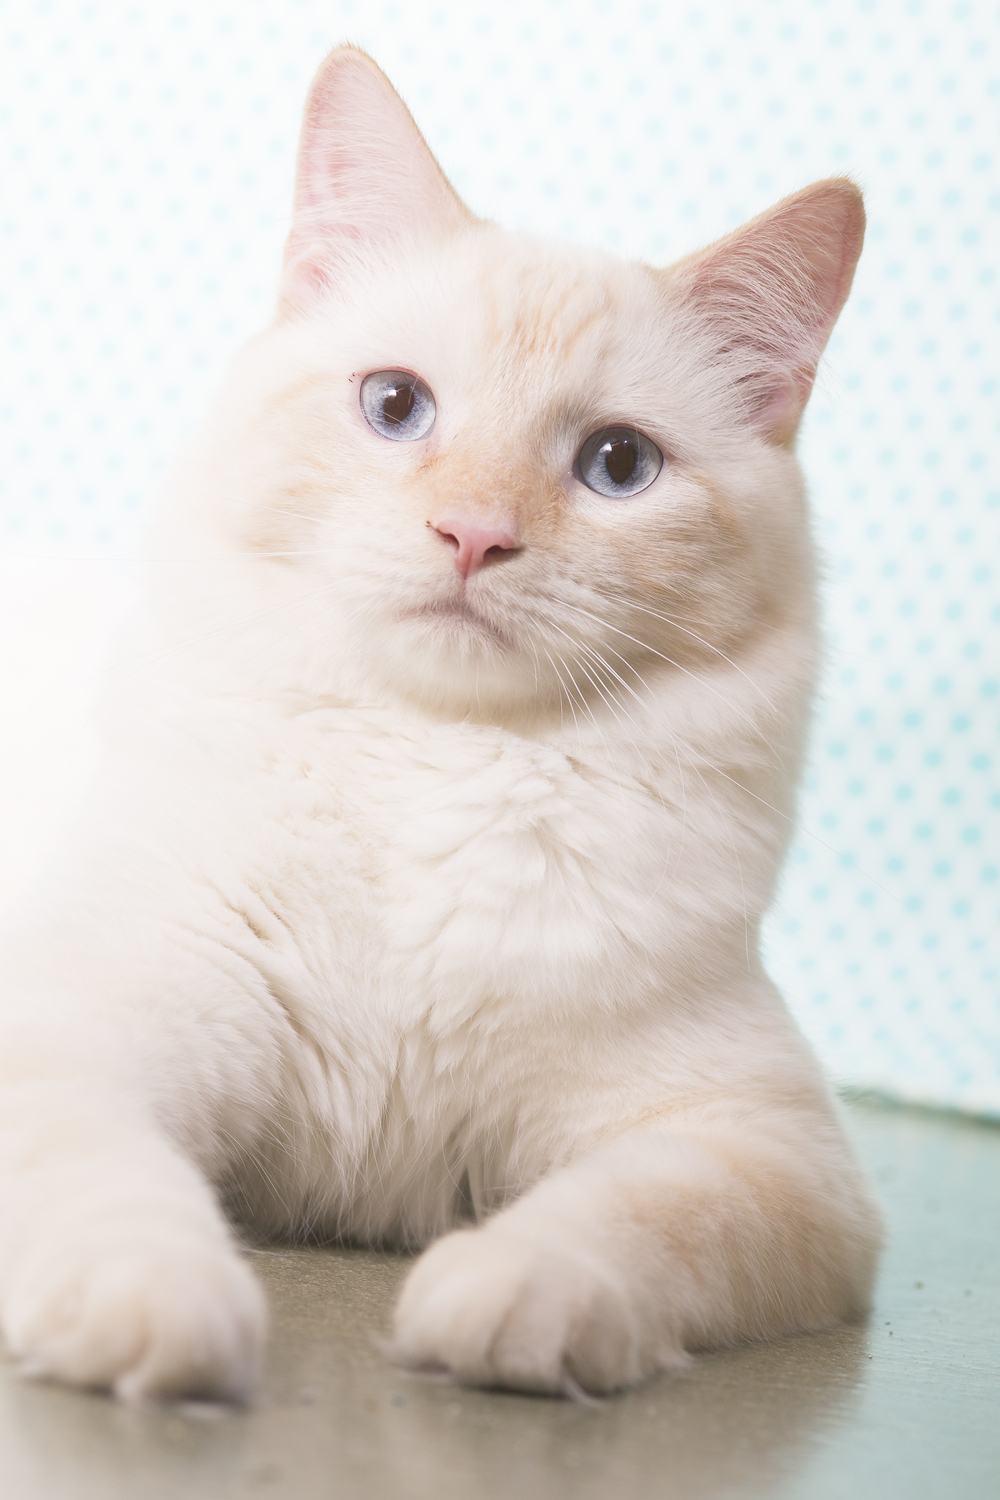 06 white cat pet photography studio session on blue polka dot fabric.jpg